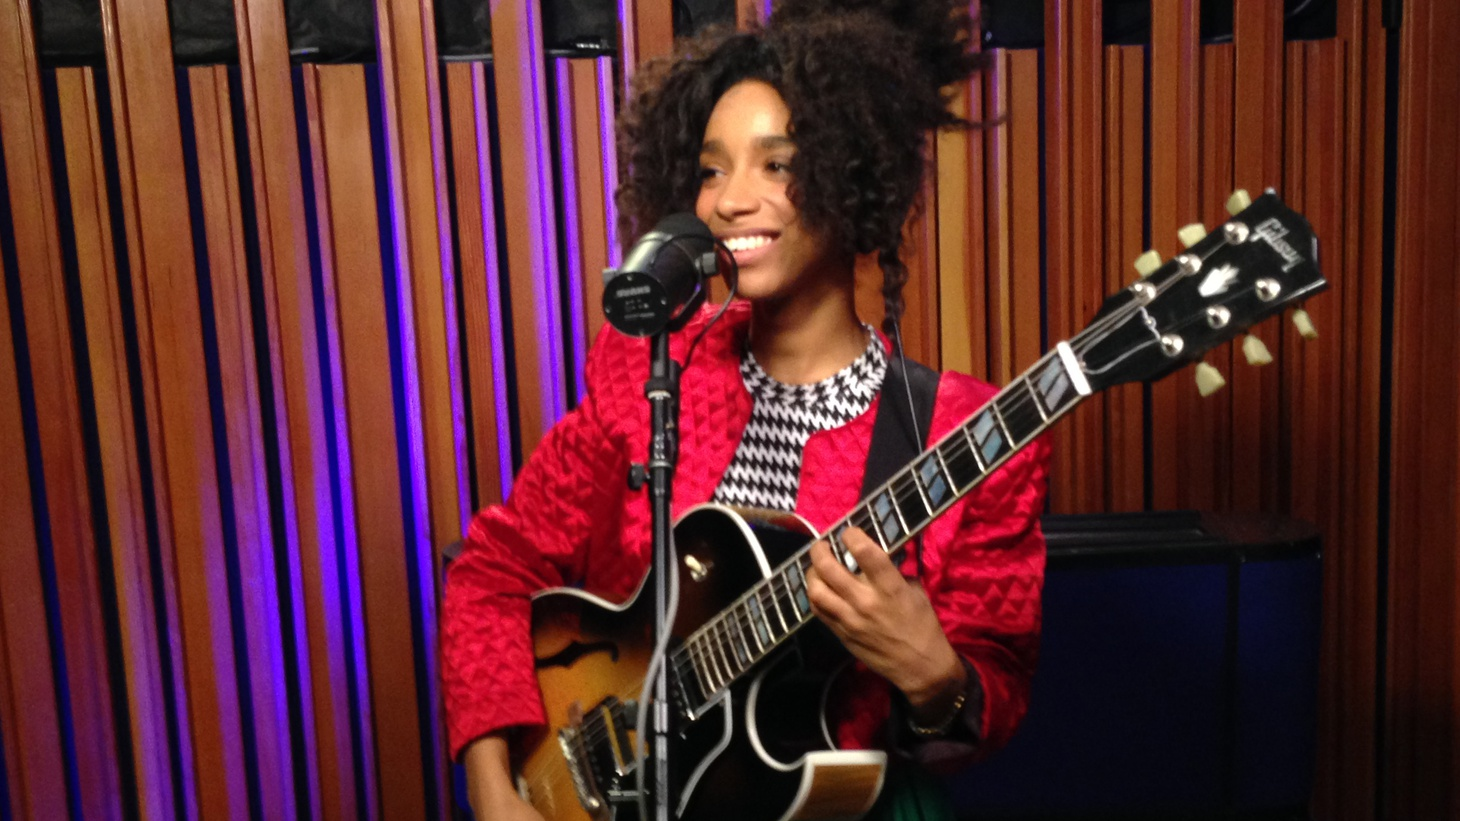 Lianne La Havas is a powerhouse performer with uplifting, soulful pop songs that are playful yet intimate. She's engaging on every level and full of heart.